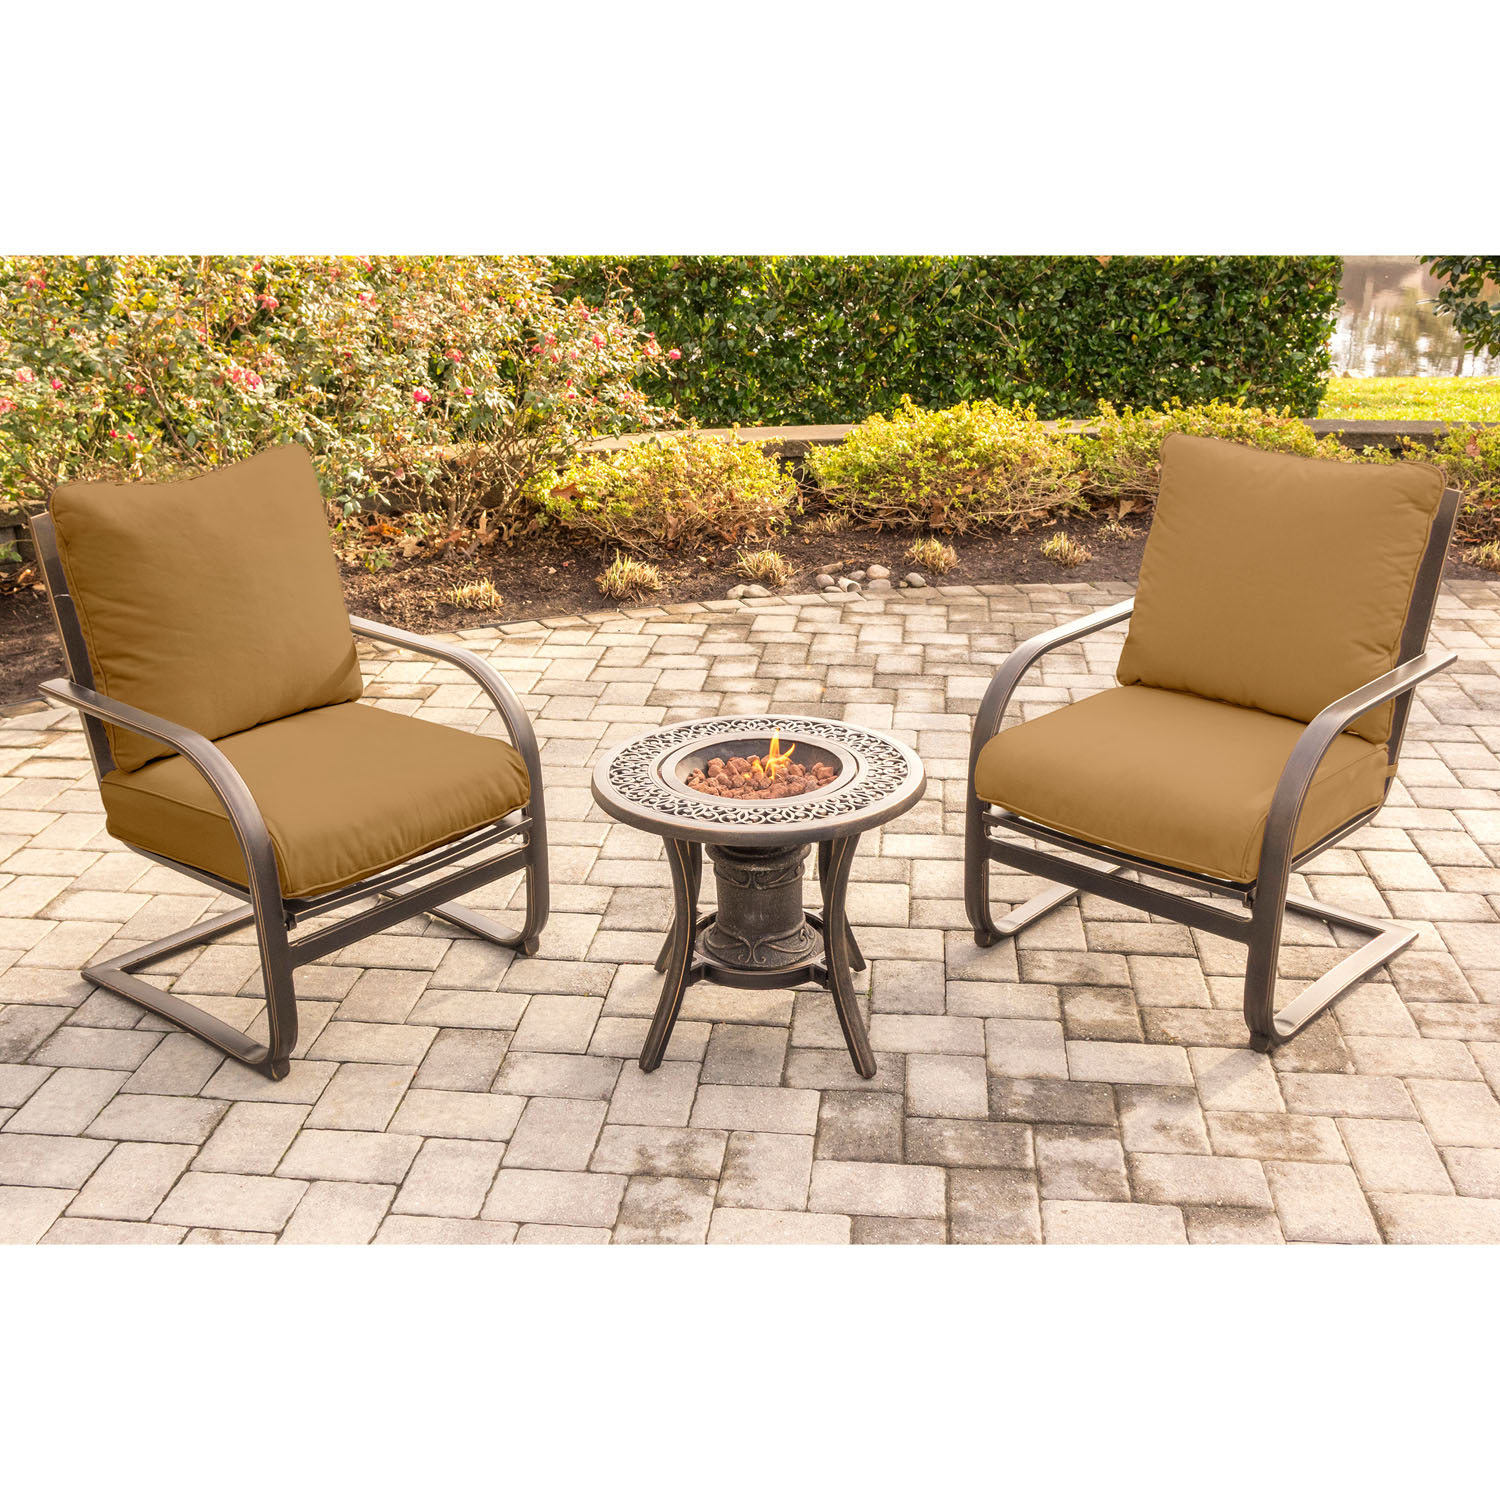 Fire Pit Table And Chairs Set Summer Nights 3pc Fire Pit Chat Set With 2 C Spring Chairs